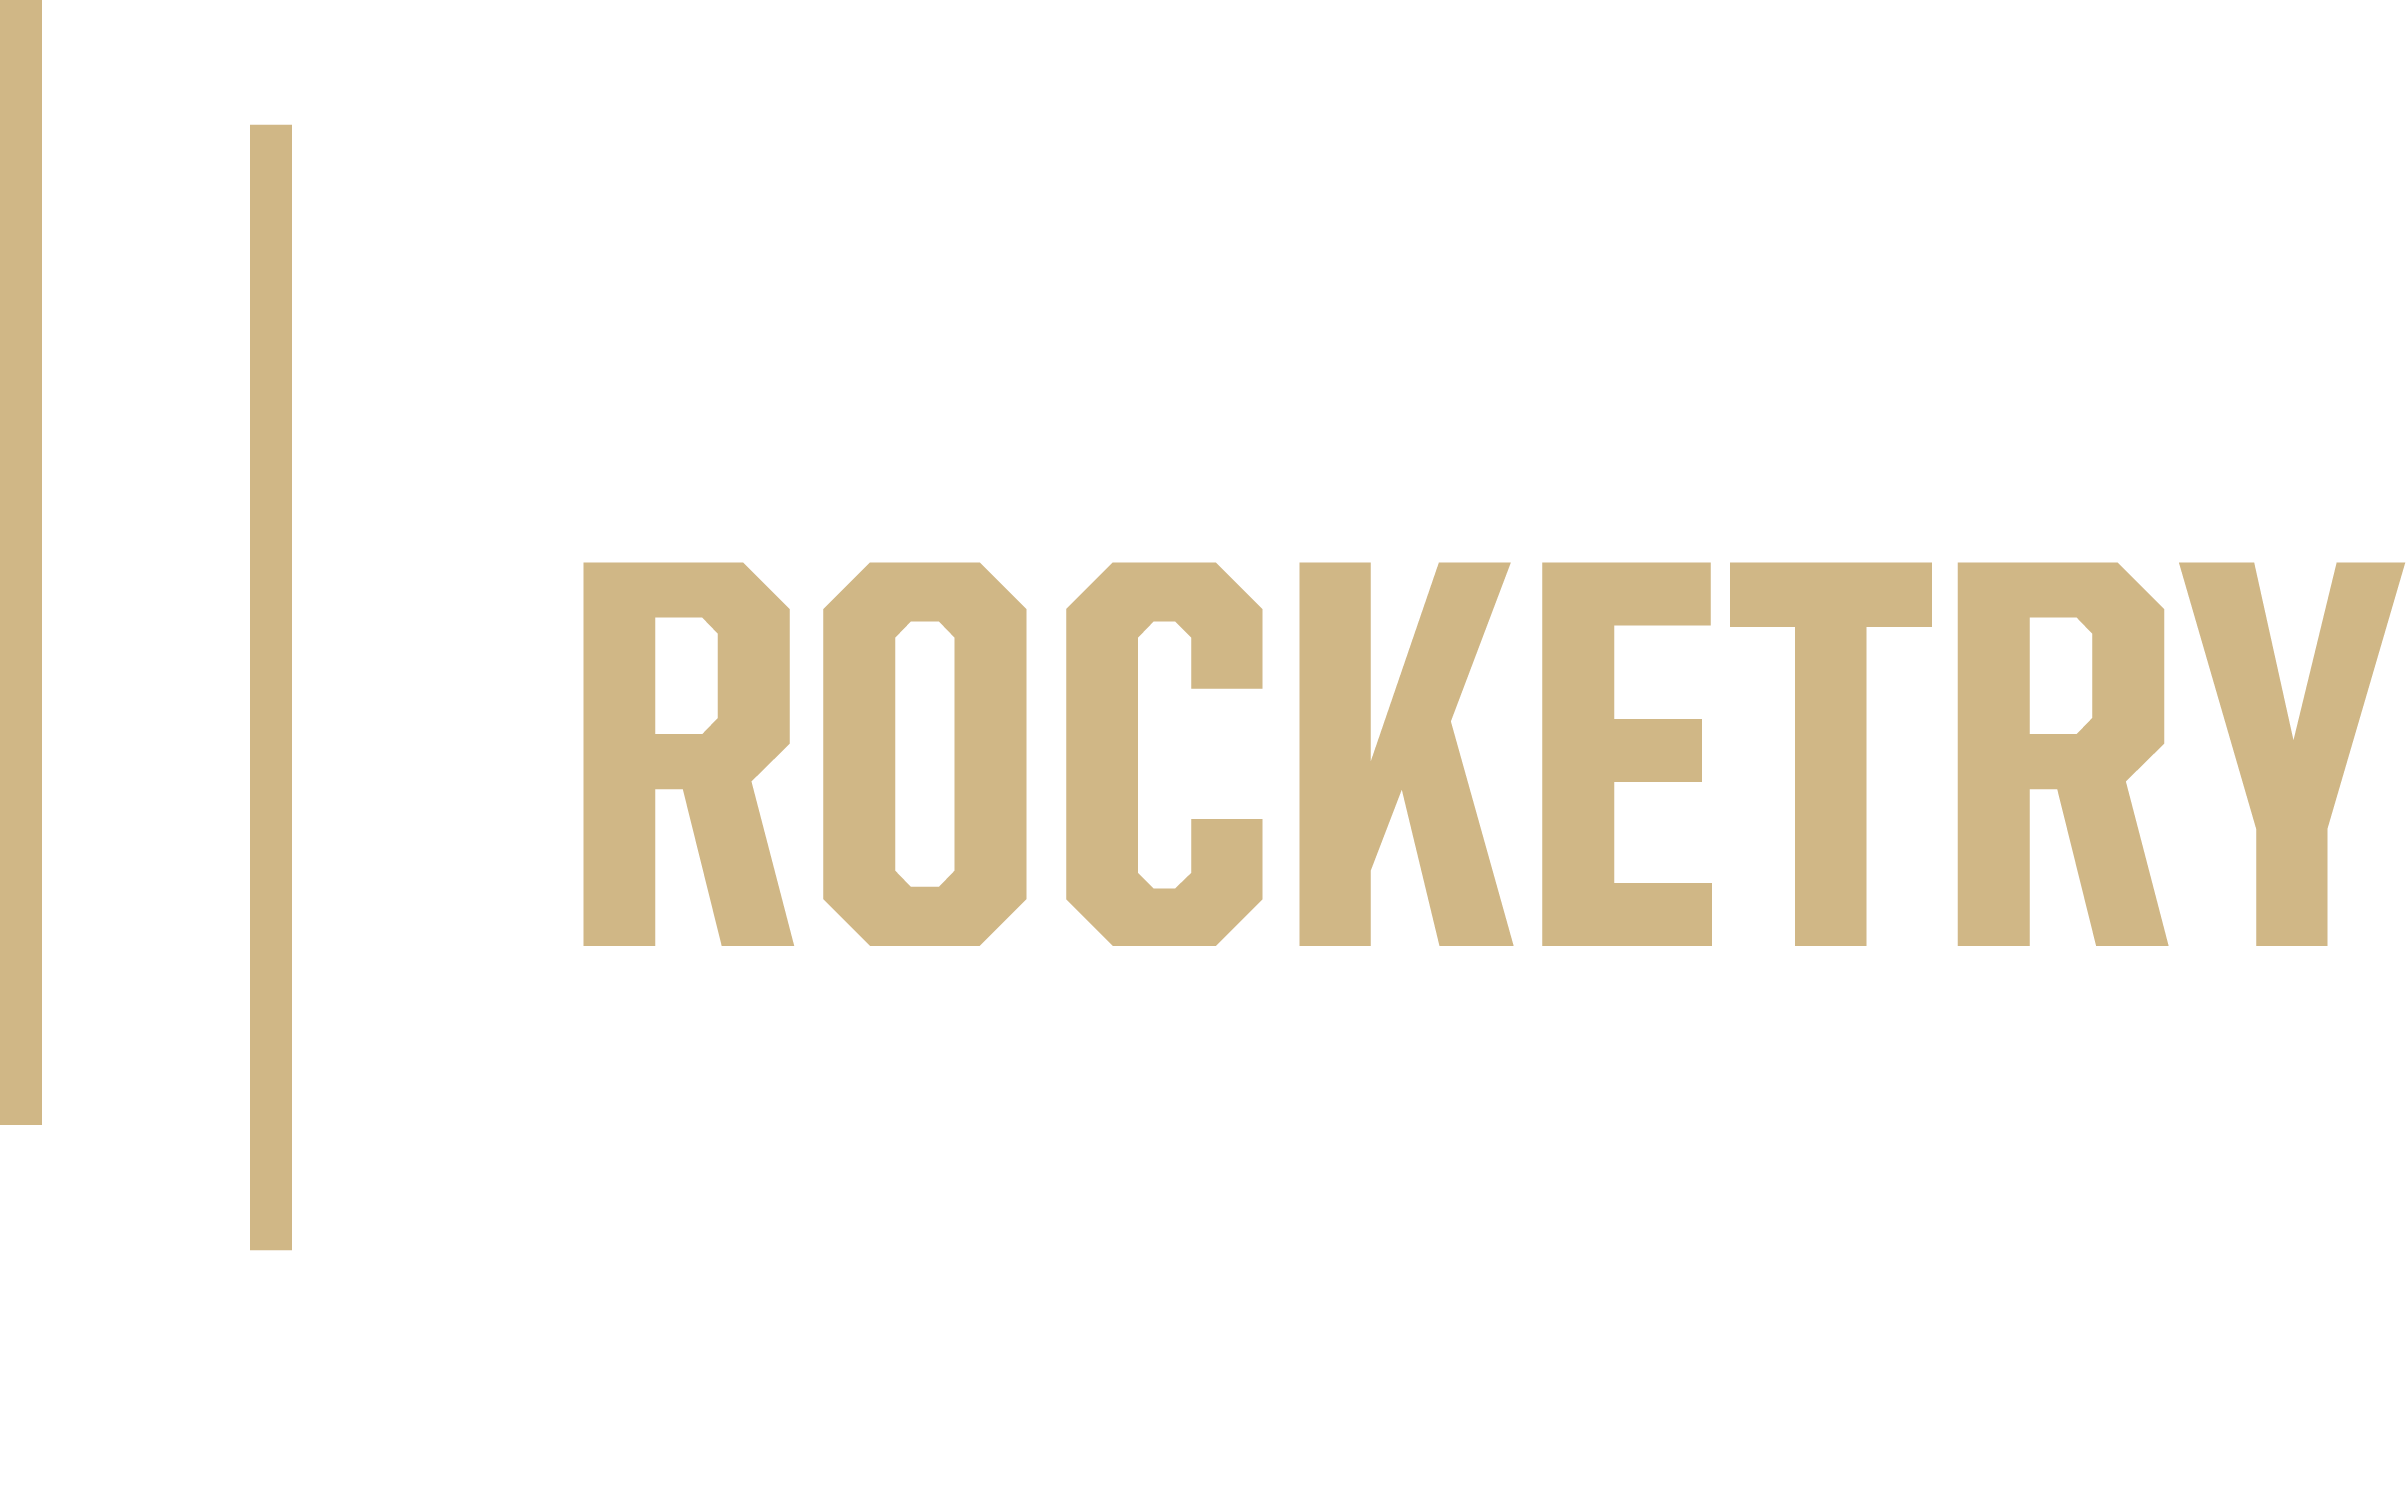 Midwest Rocketry Forum